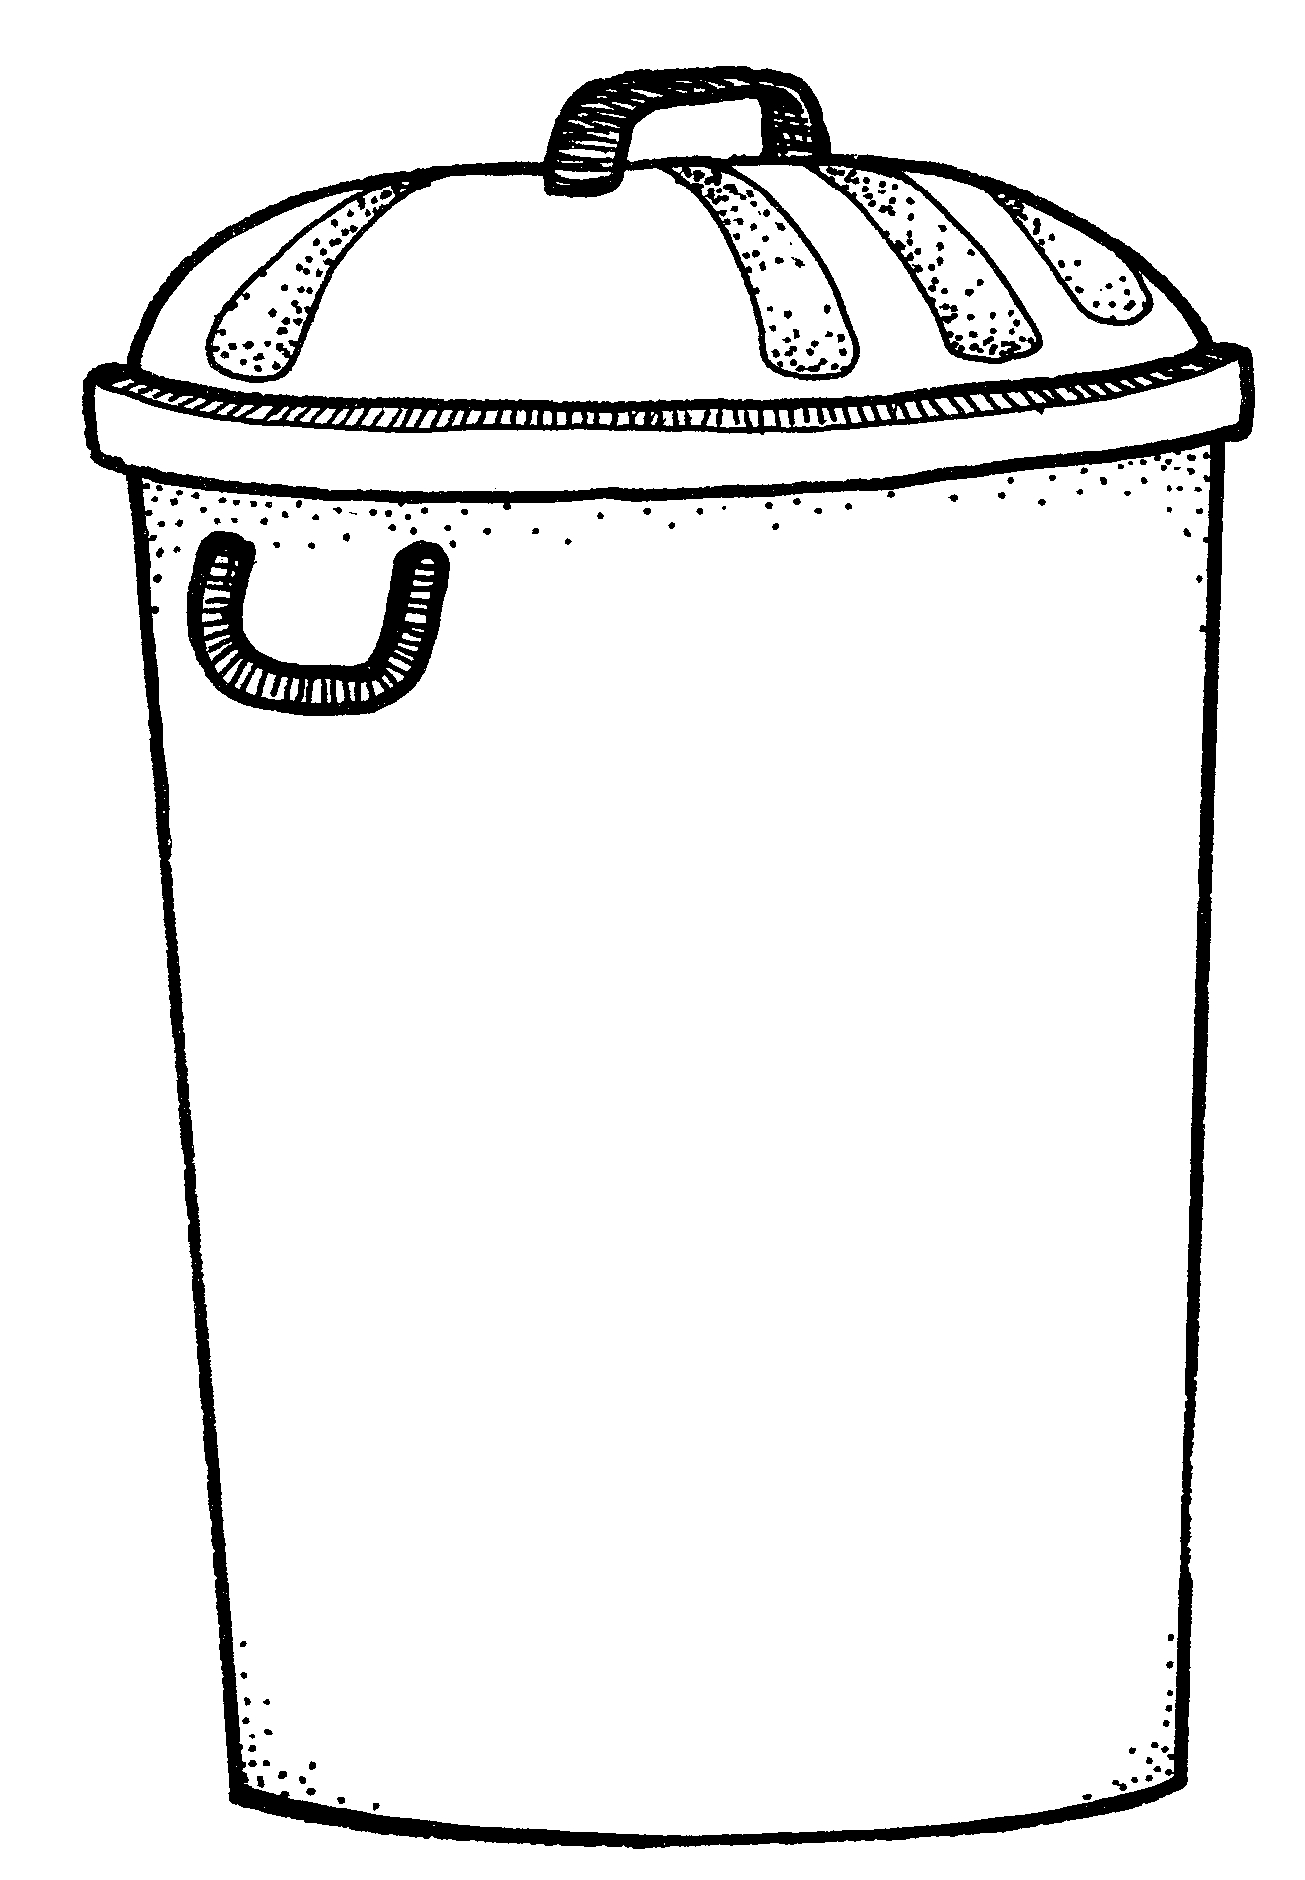 Trash clipart black and white 1 » Clipart Station.